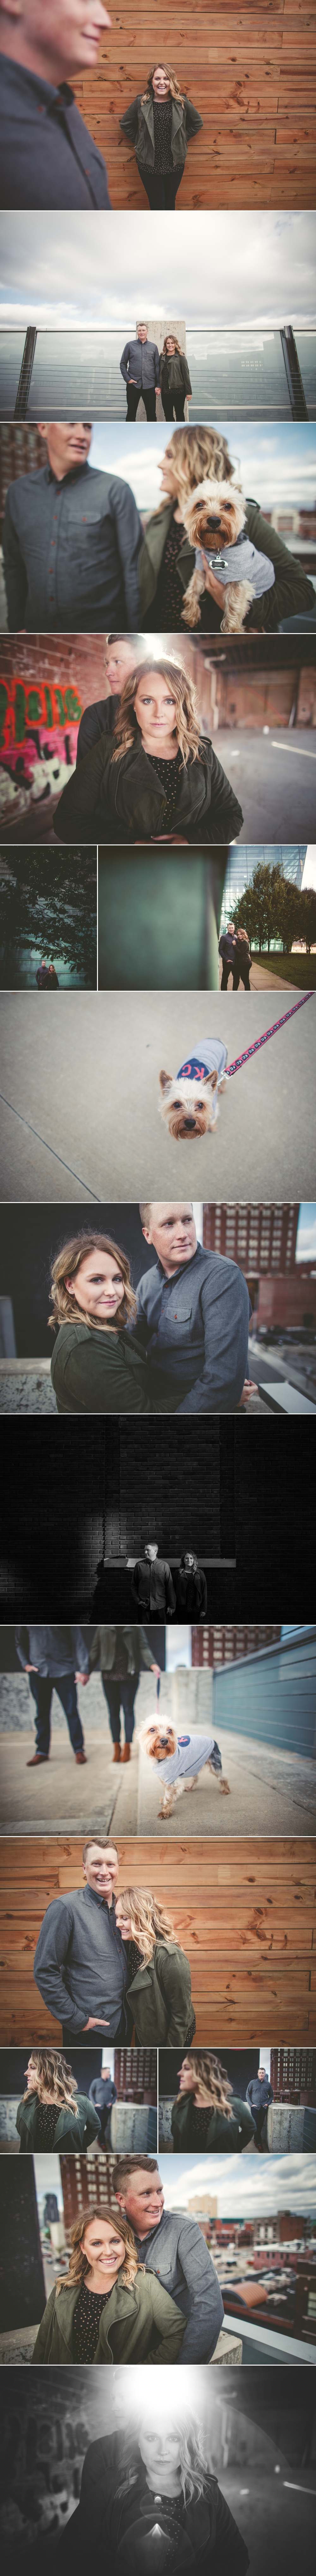 jason_domingues_photography_best_kc_wedding_photographer_engagement_session_crossroads_downtown